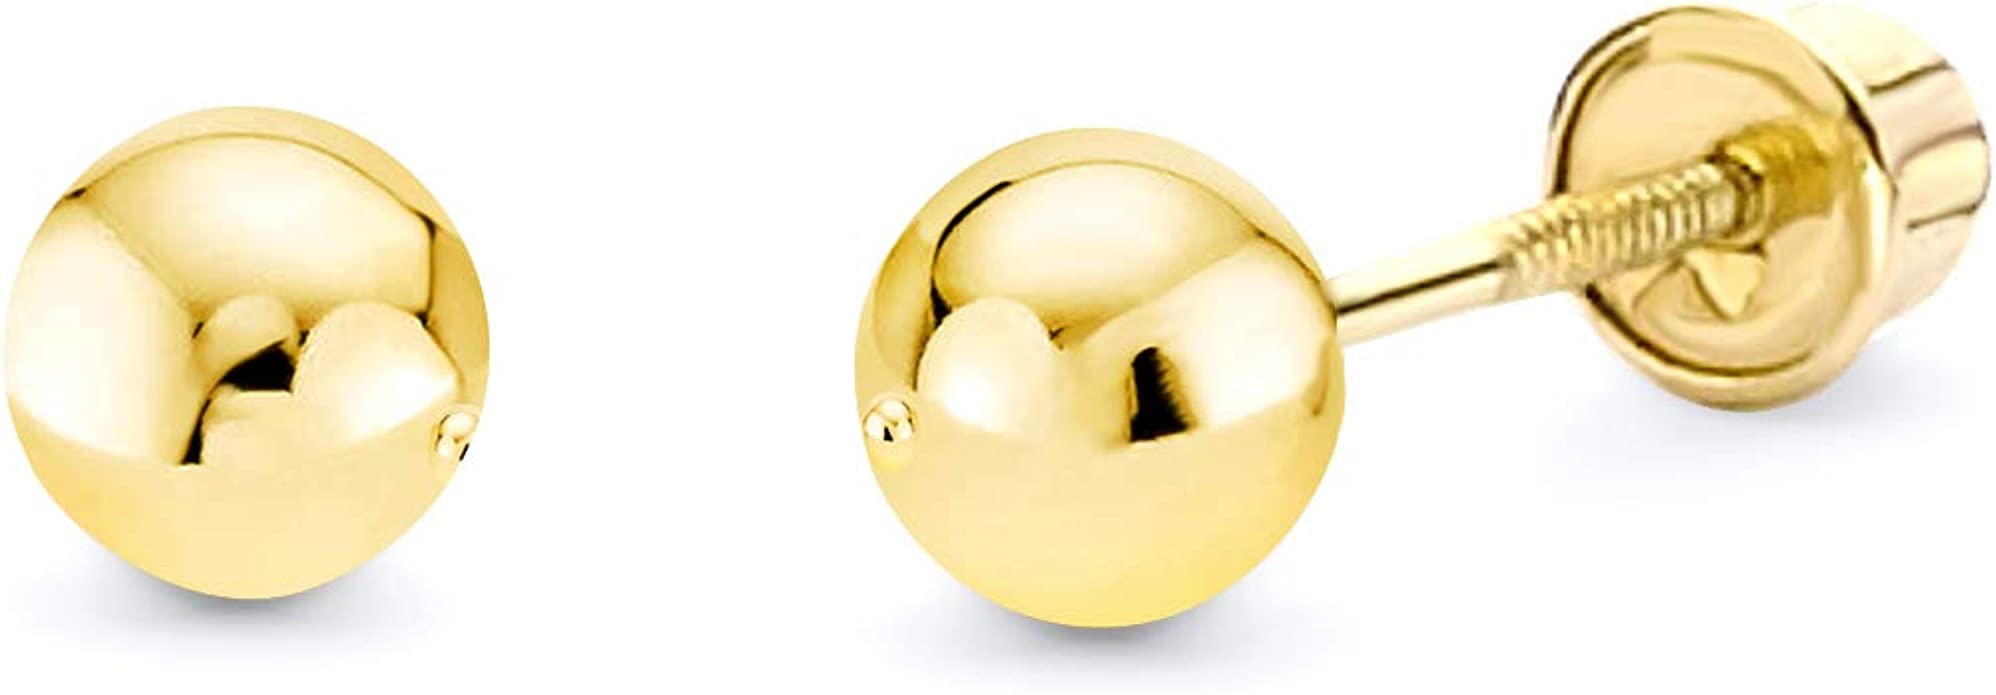 Wellingsale 14K Yellow Gold Polished 6mm Ball Stud Earrings With Silicone Back